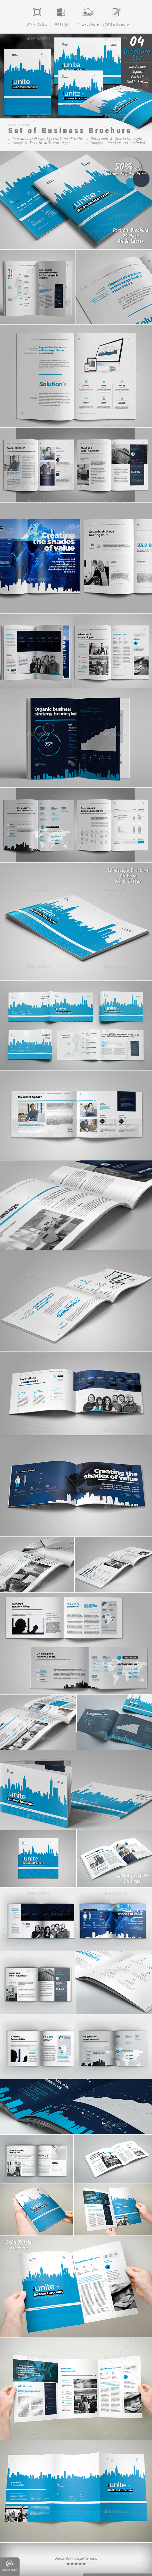 Brochure Bundle - Corporate Brochures